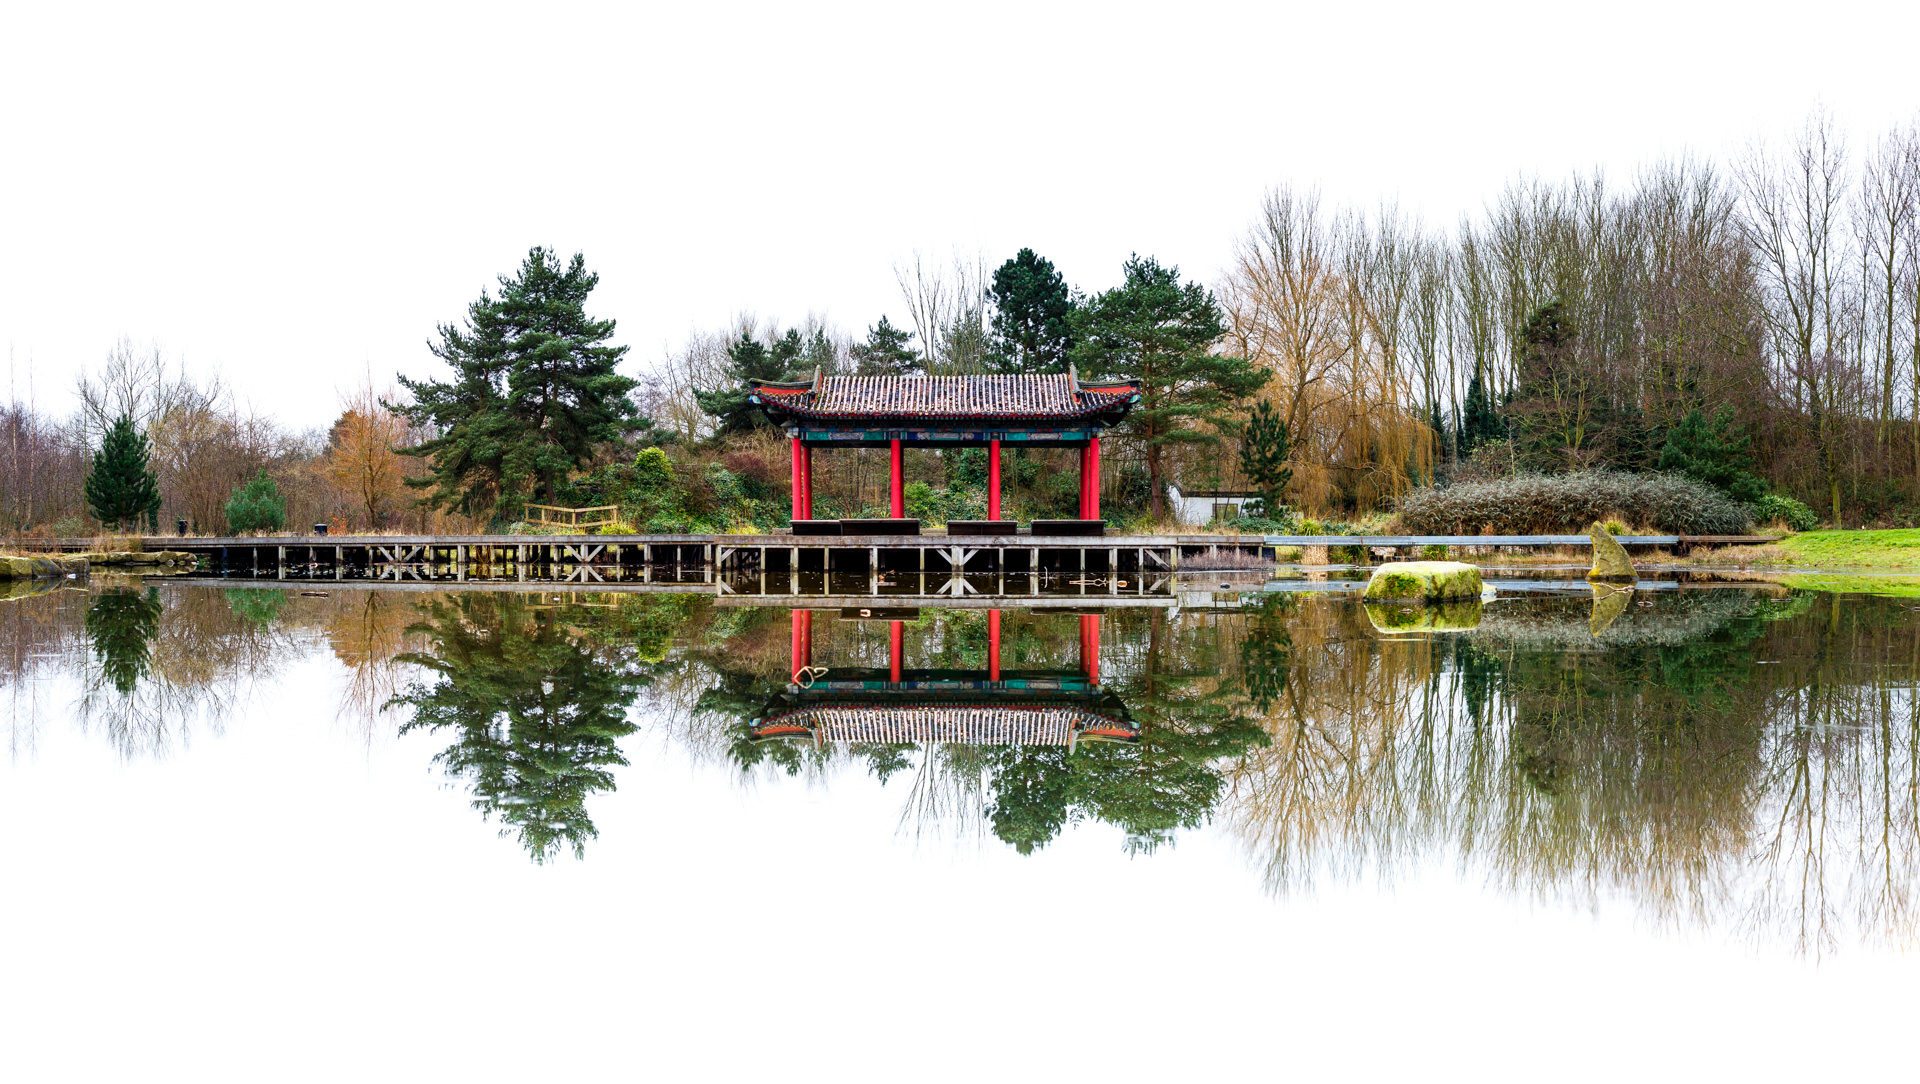 The way the frozen surface of the lake was allowed me to get a very still reflection. As there were no clouds or blue sky I decided to blow it out and go for a white background to allow the pagoda and trees to stand out.